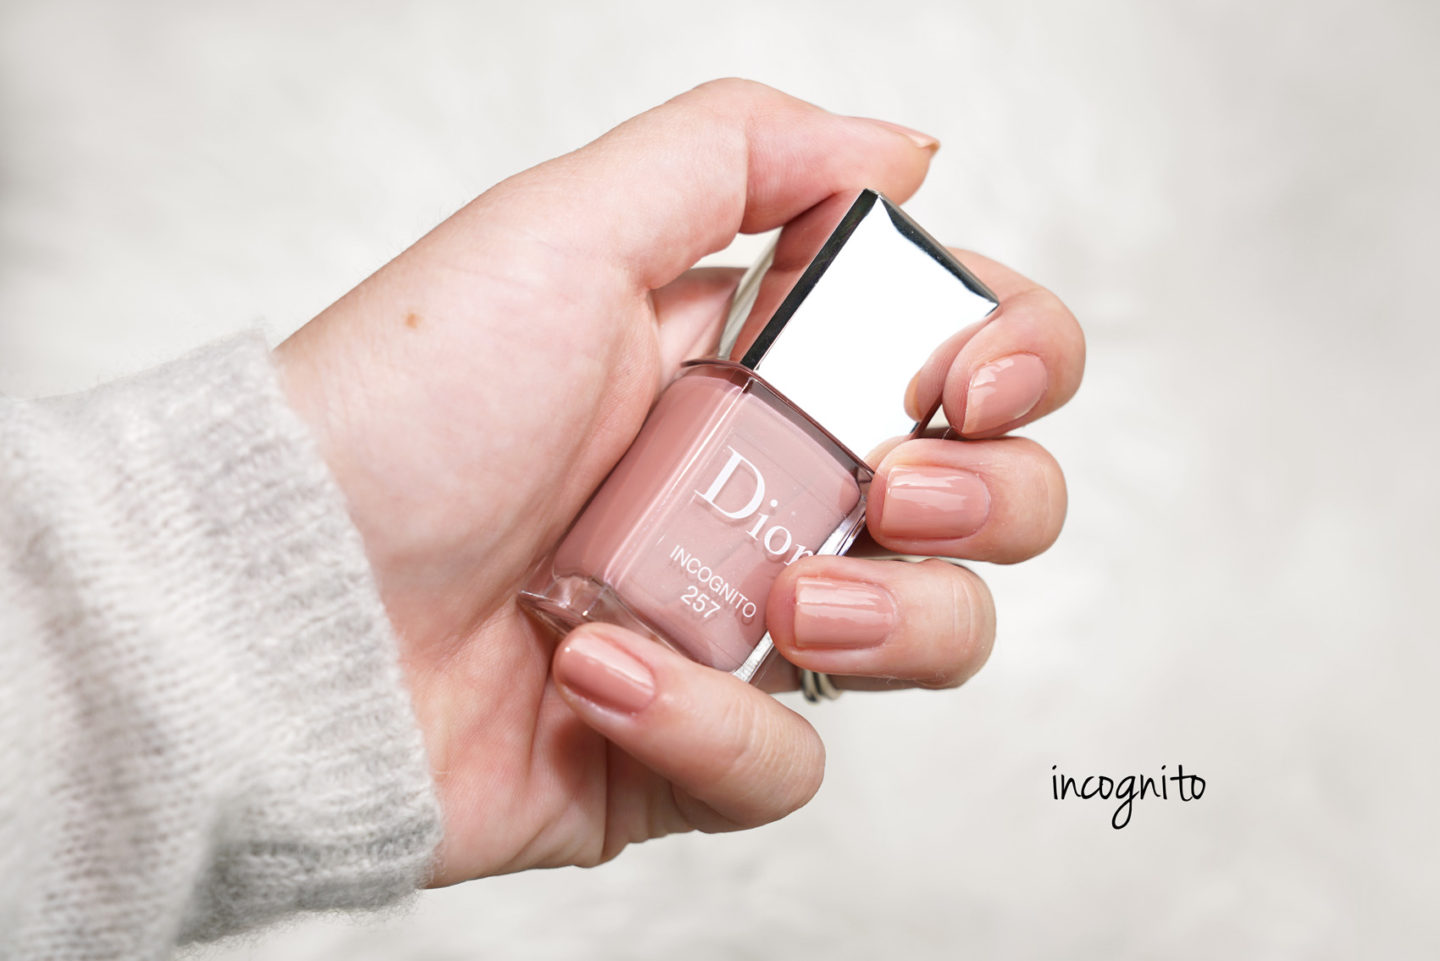 Dior Incognito Nail Polish | The Beauty Look Book